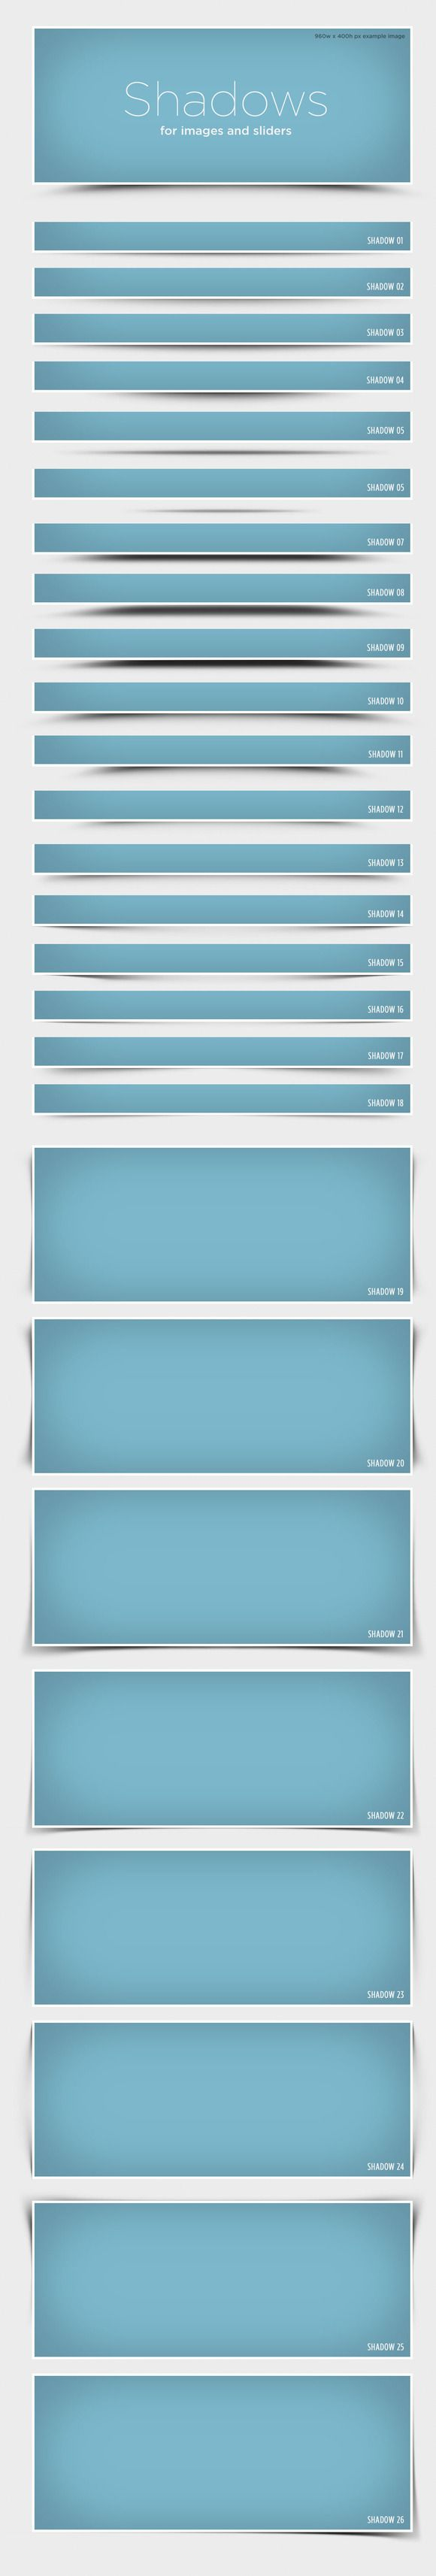 Realistic shadows for use with images, boxes or web sliders. PSD file for web design. $4